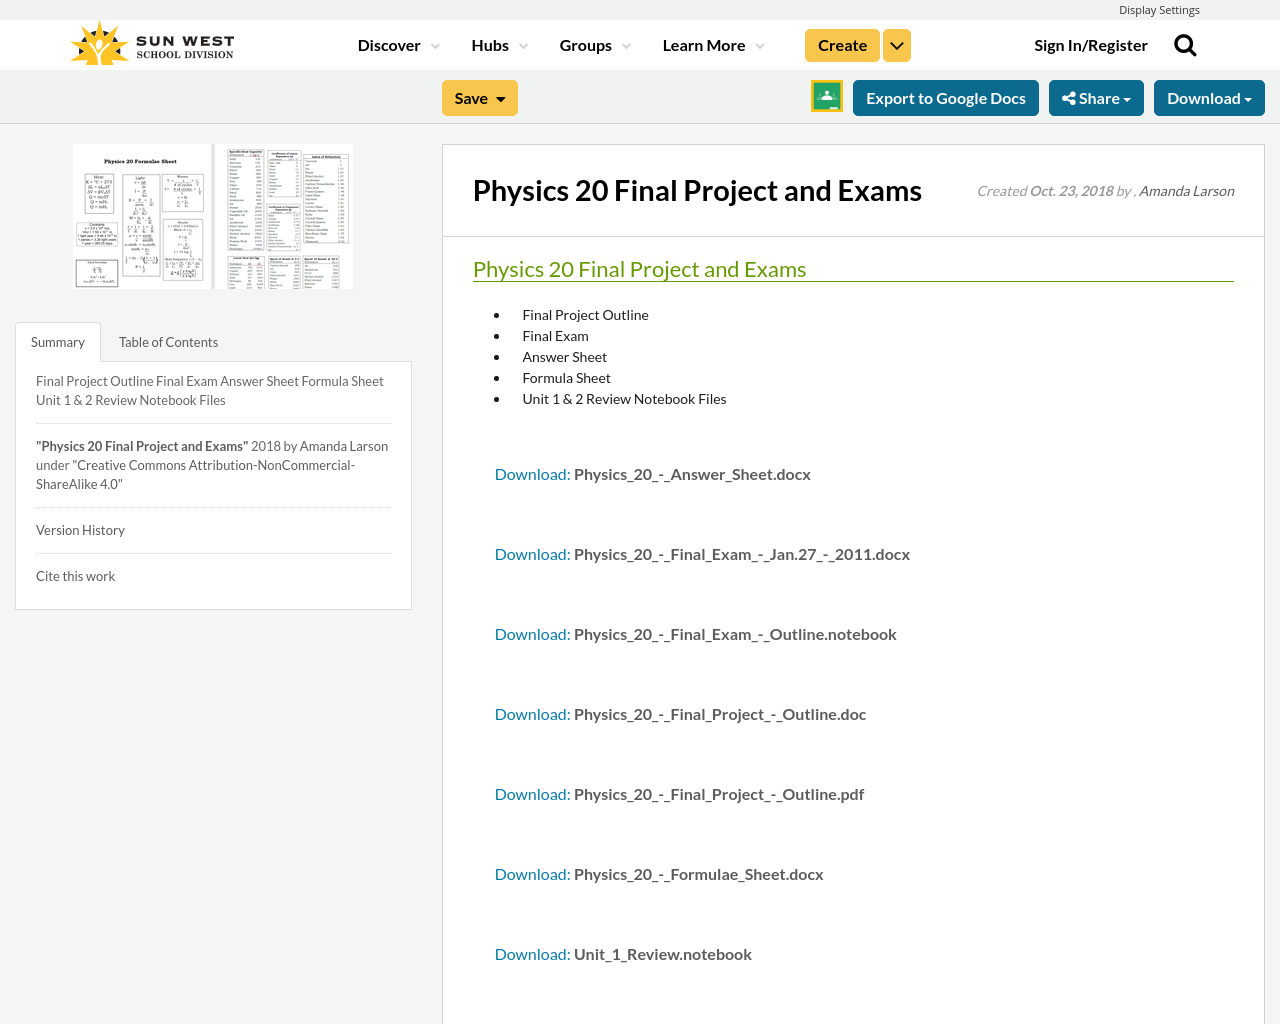 Physics 20 Final Project and Exams | Resource Bank